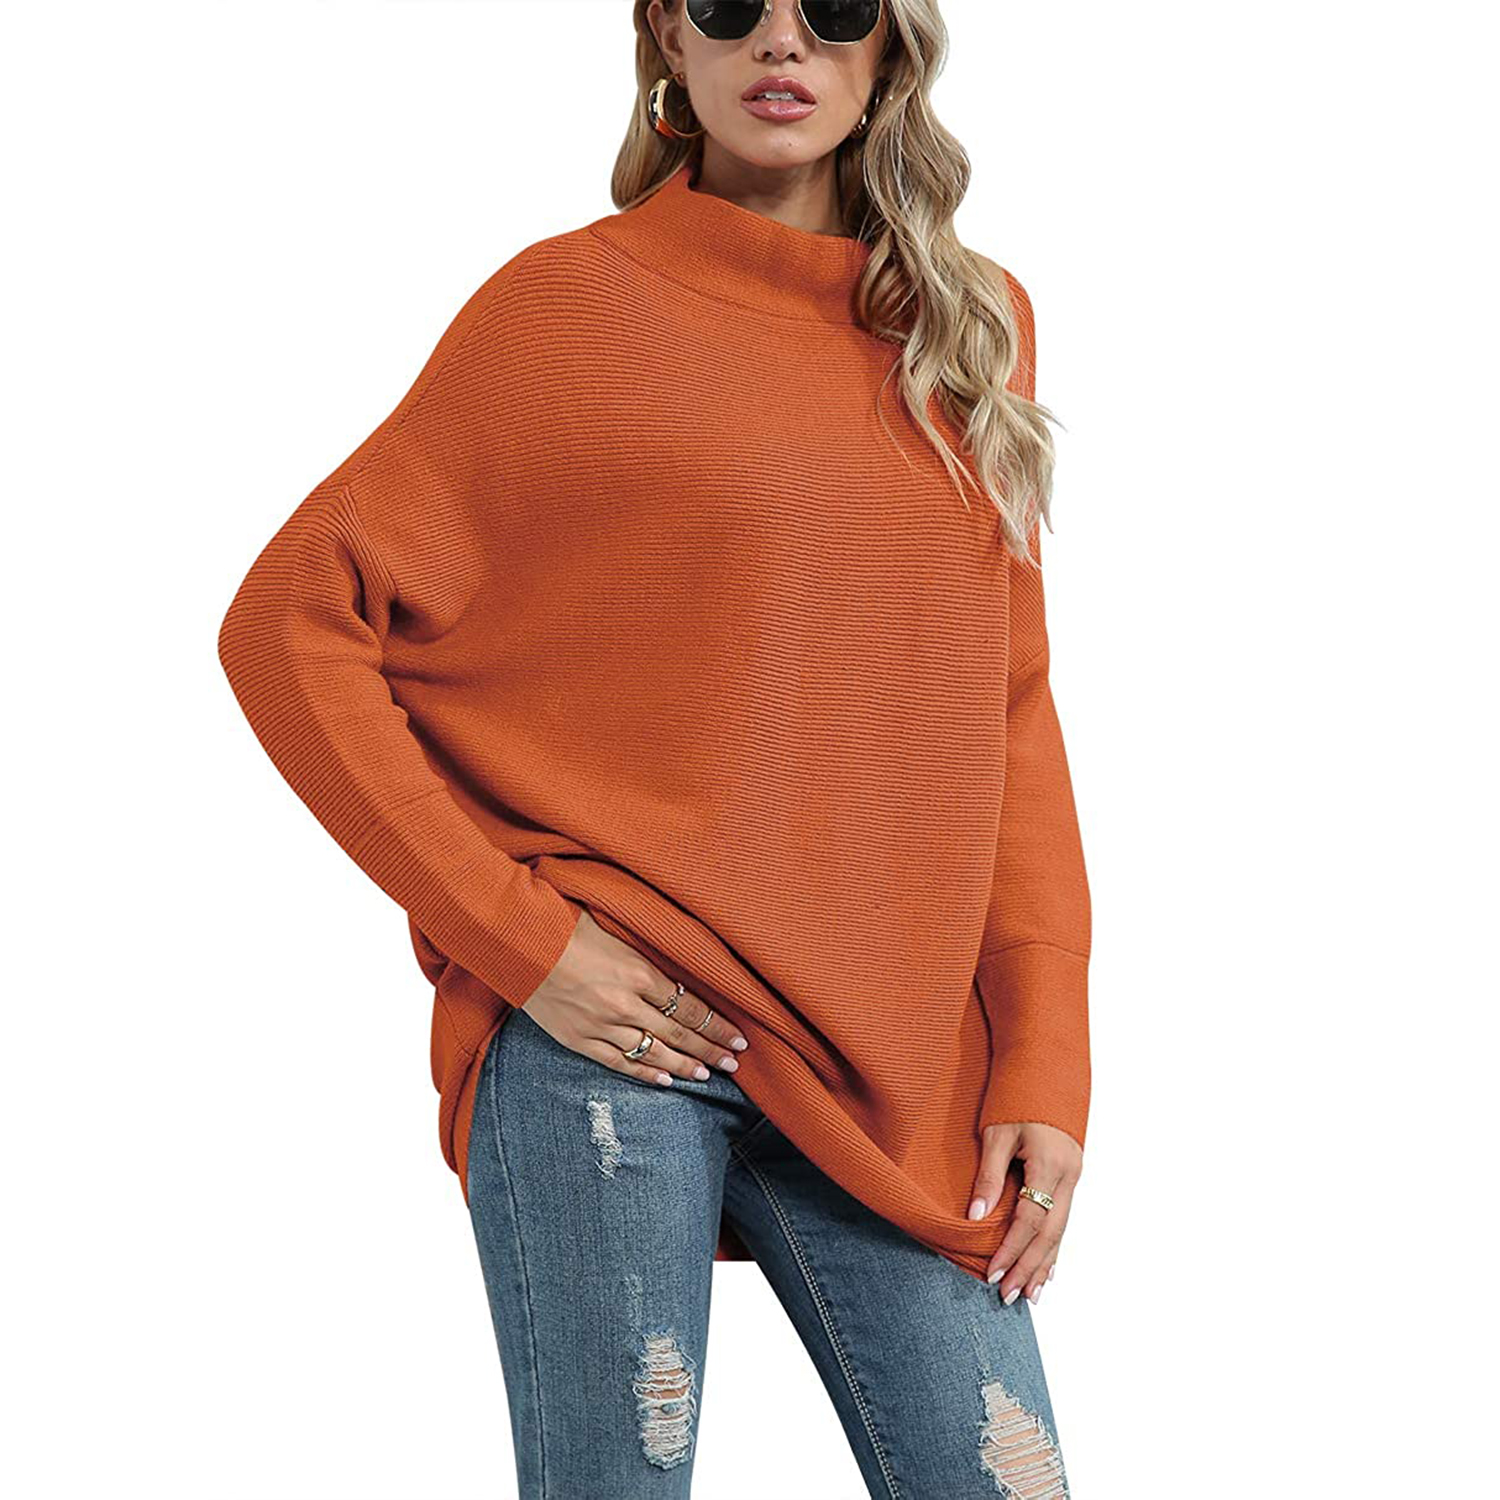 ANRABESS Women Casual Turtleneck Batwing Sleeve Slouchy Oversized Sweater